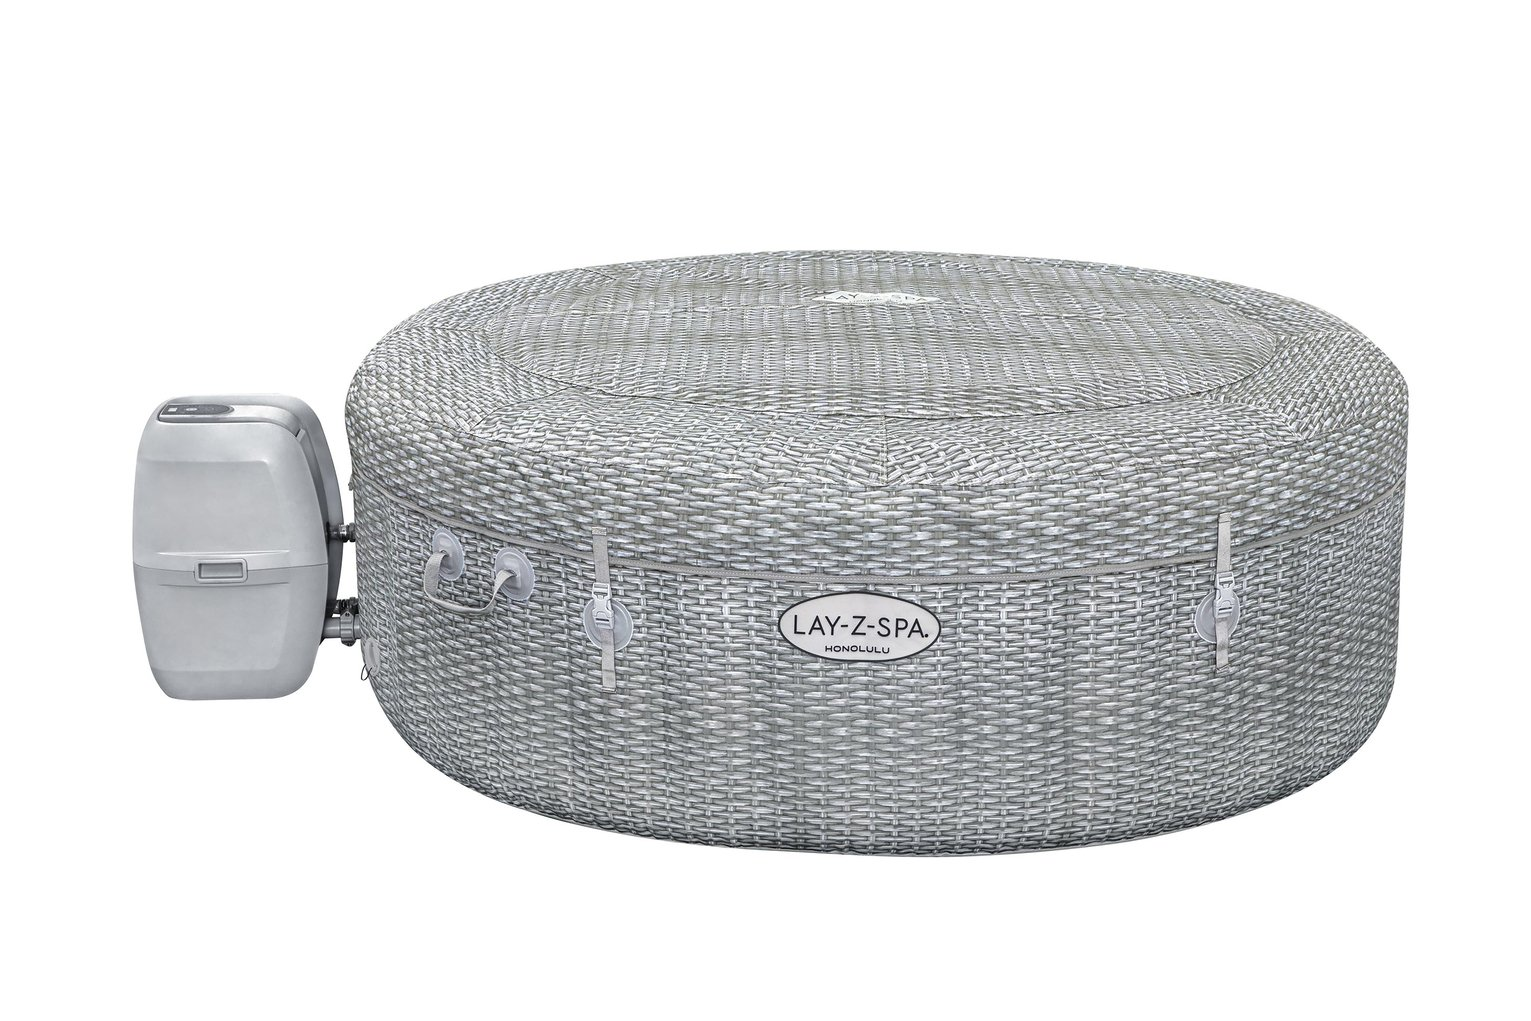 Lay-Z-Spa Honolulu 6 Person LED Hot Tub - Home Delivery Only